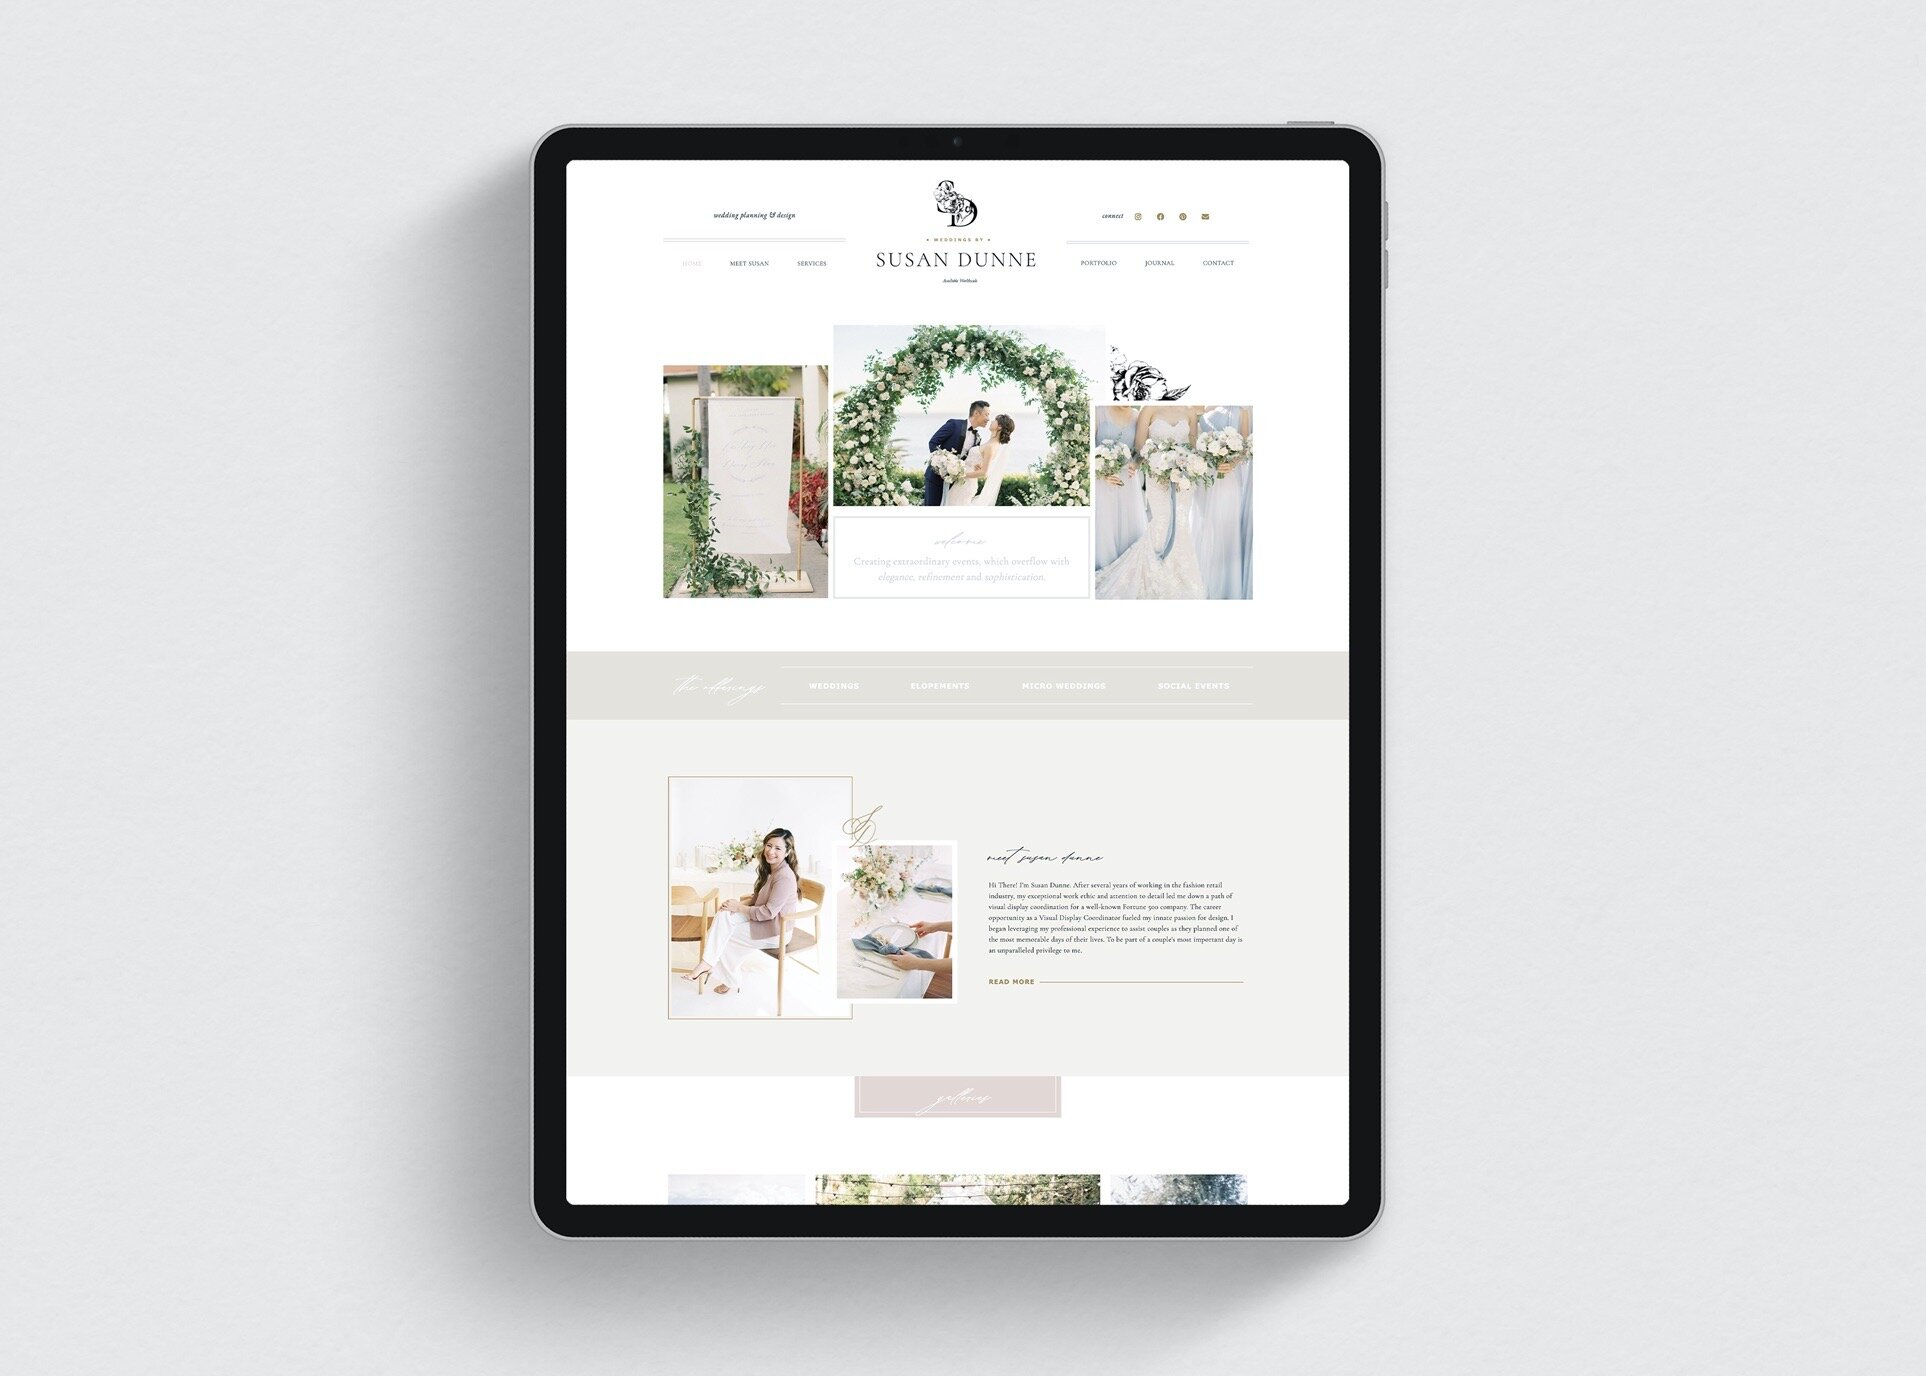 Weddings-by-Susan-Dunne-Website-Design